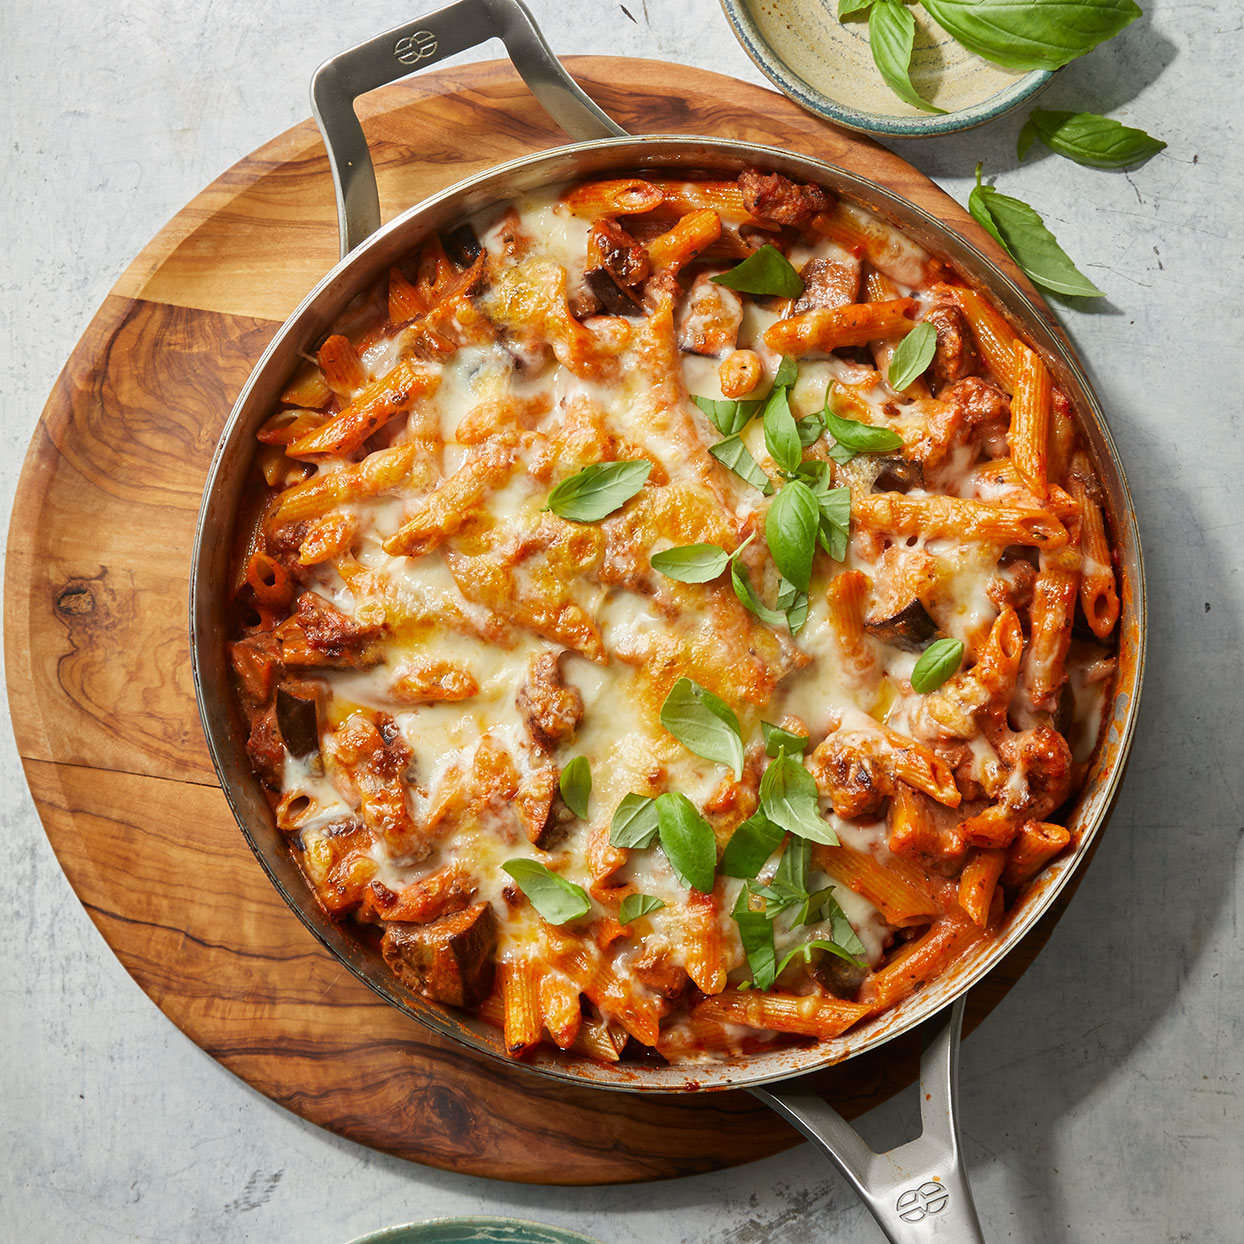 Penne with Sausage & Eggplant Bolognese